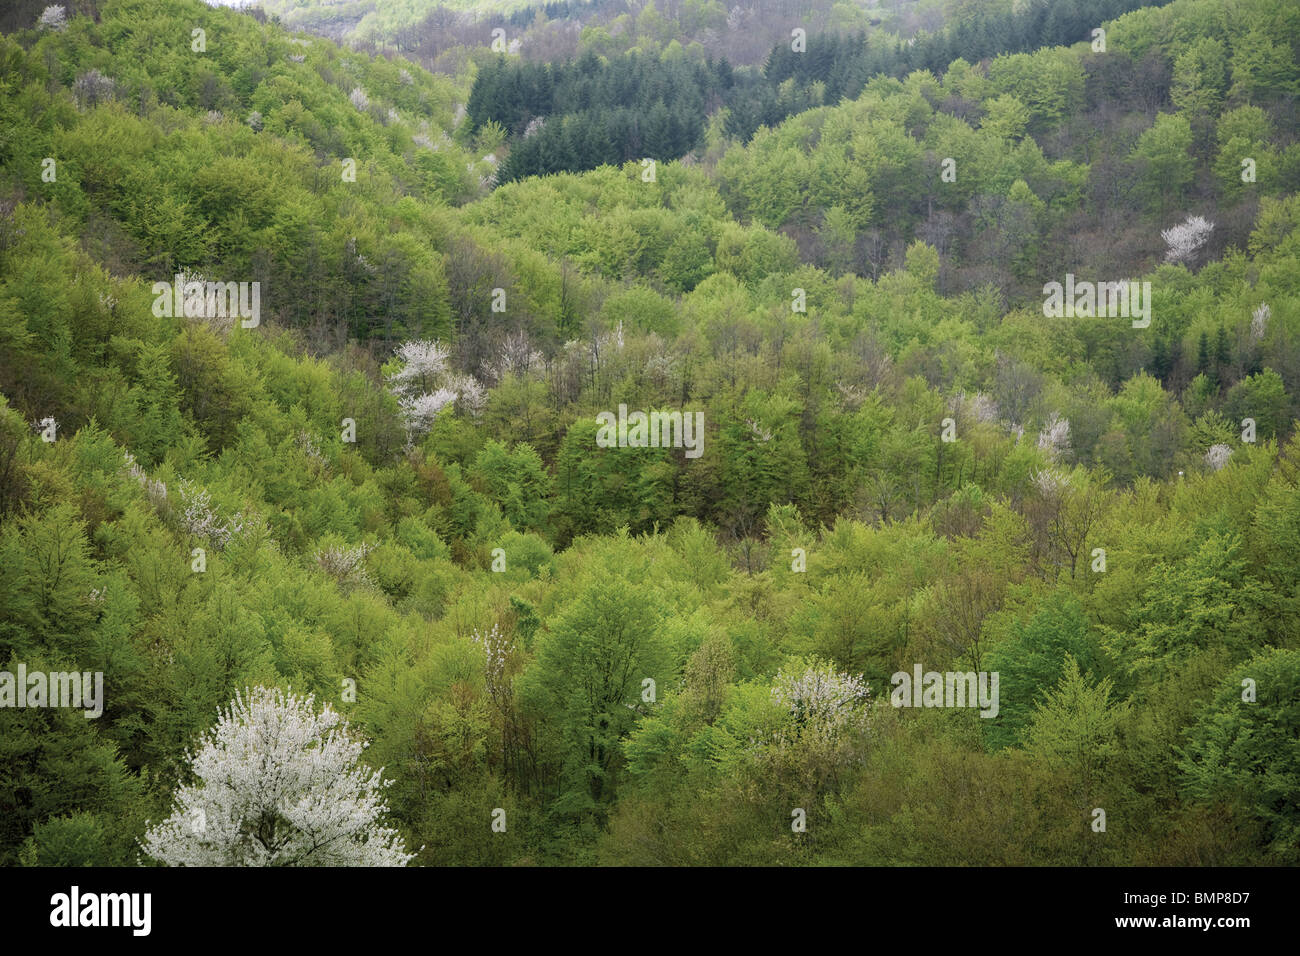 High Mountain Forest, deciduous and evergreen trees, Central Apennines, in National Park of the Casentini Forest, - Stock Image